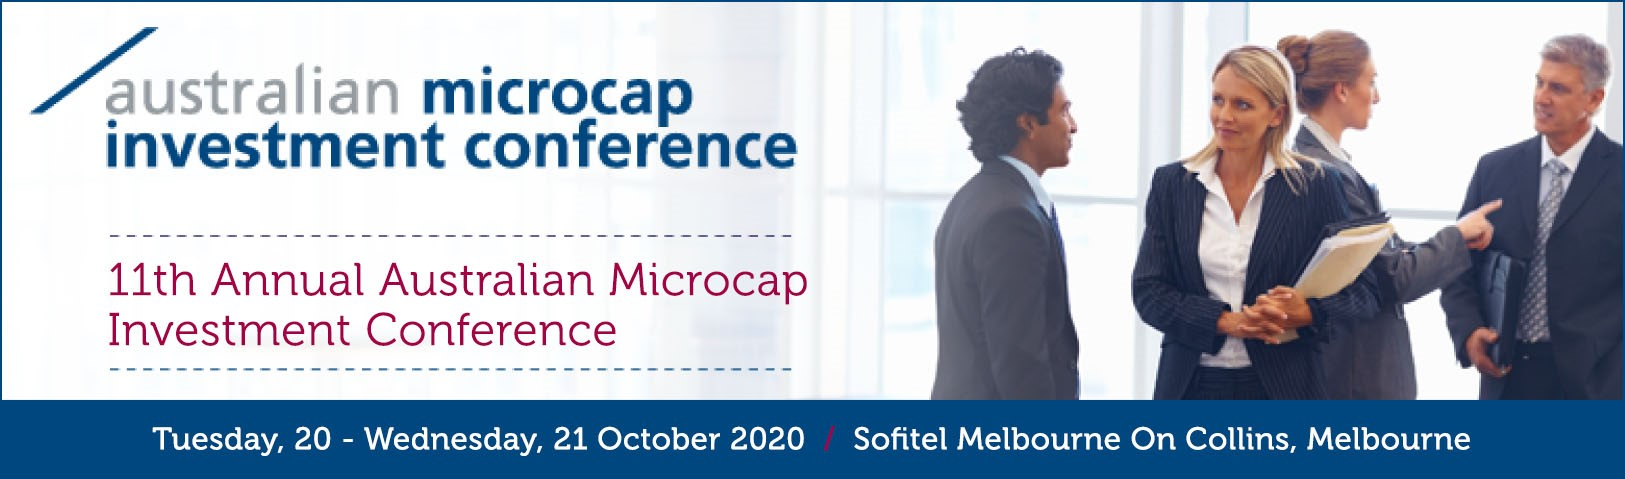 11th Annual Australian Microcap Investment Conference